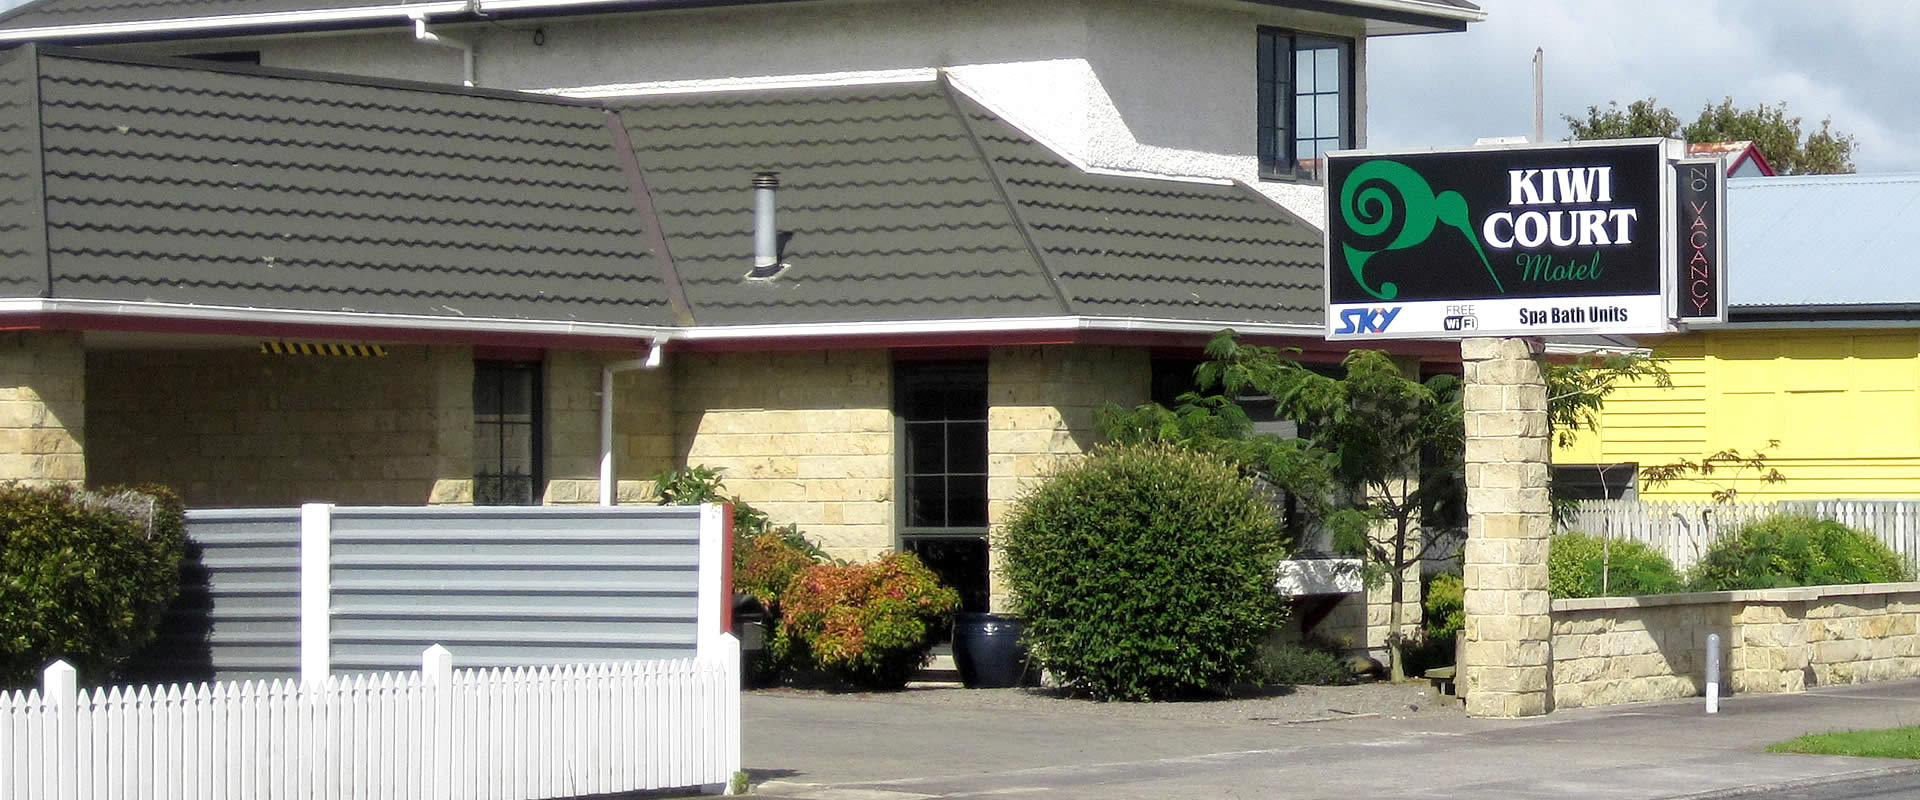 Kiwi Court Motel - Hawera Accommodation Street View